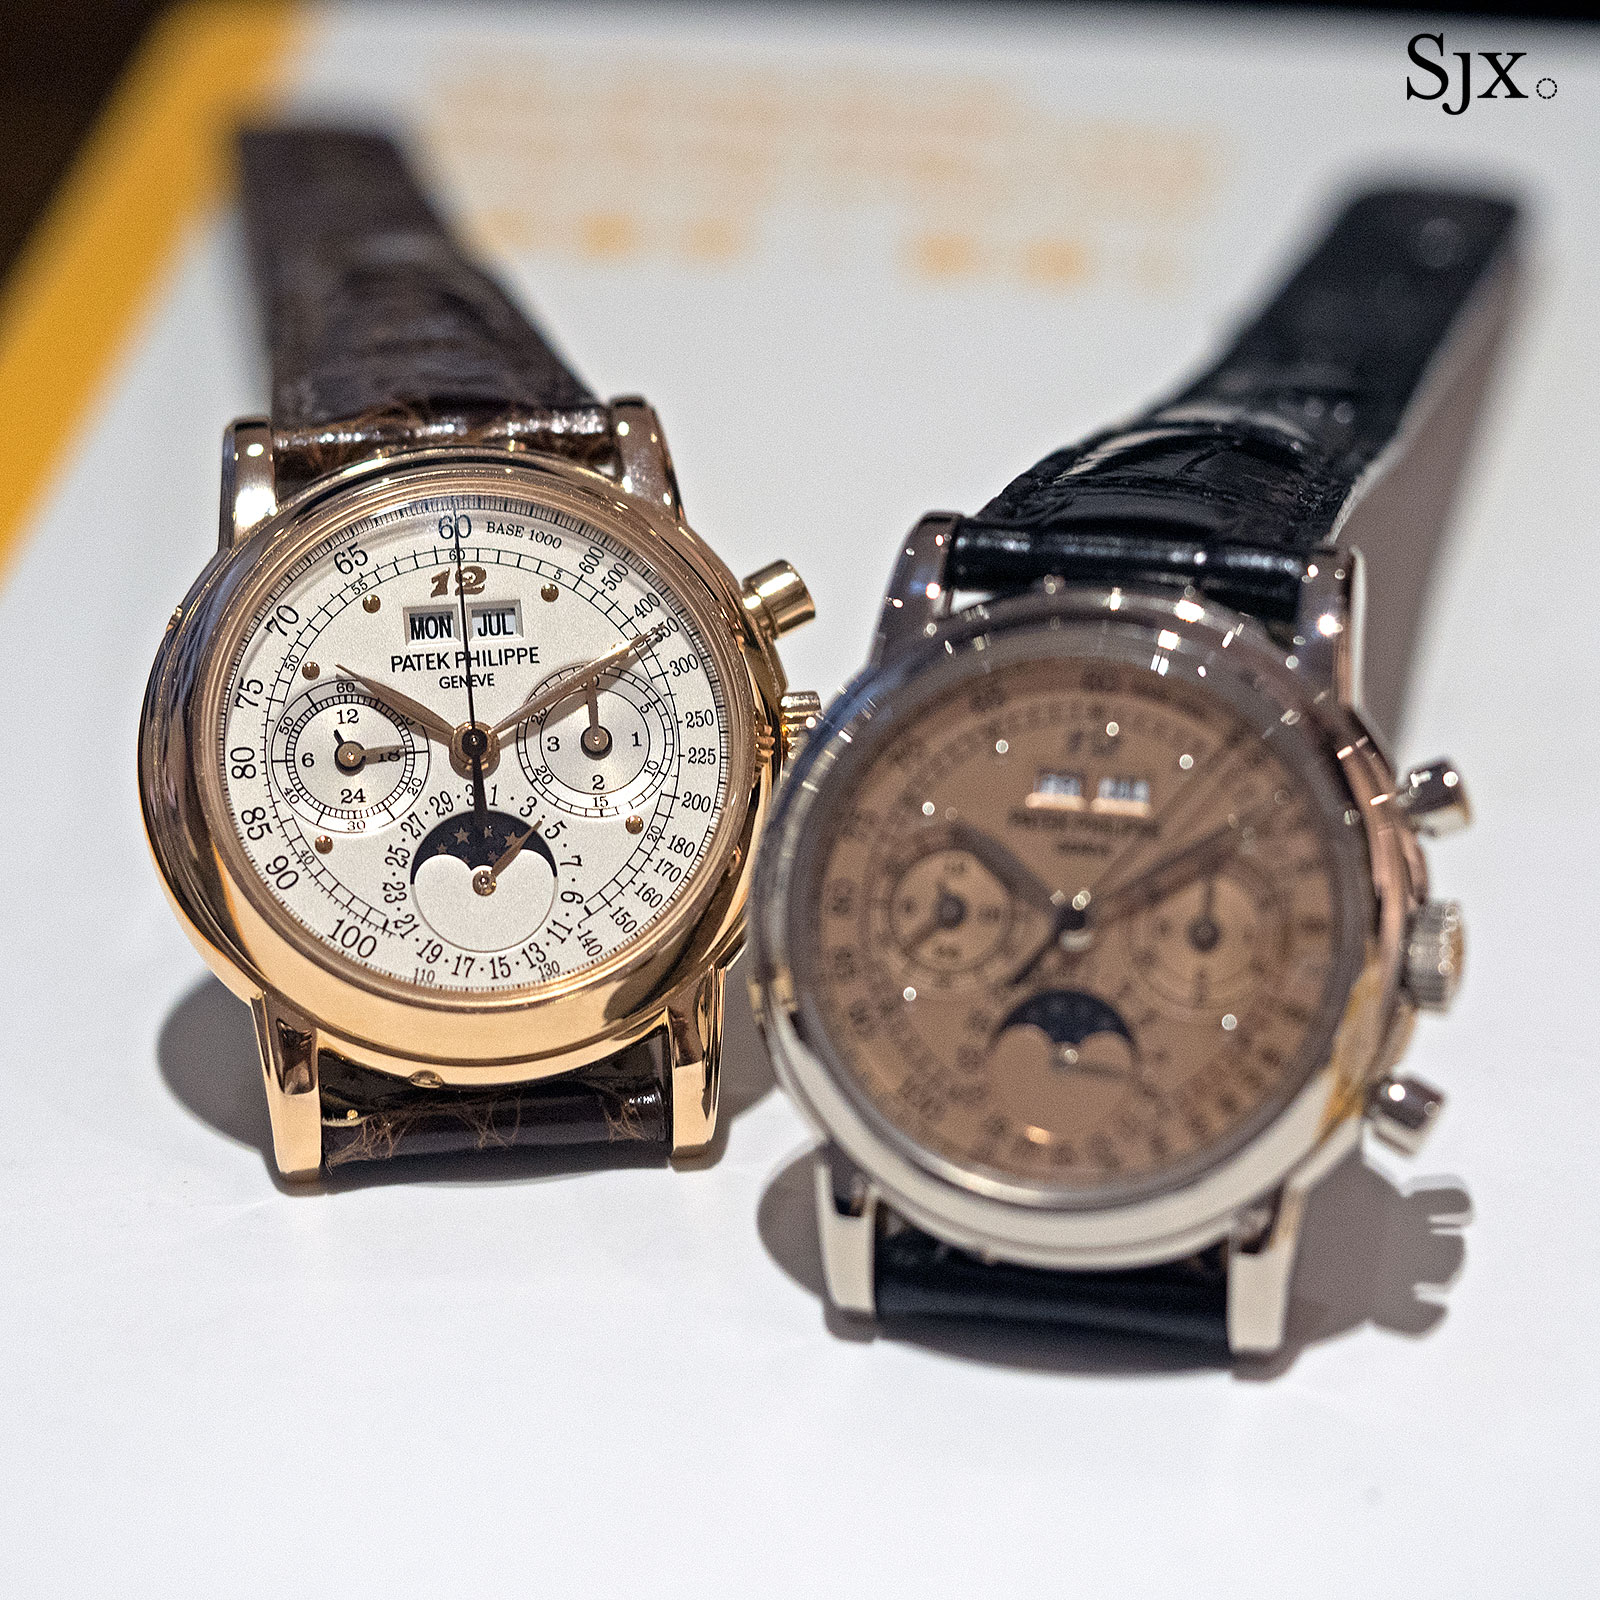 Patek Philippe refs. 3970G and 3970R